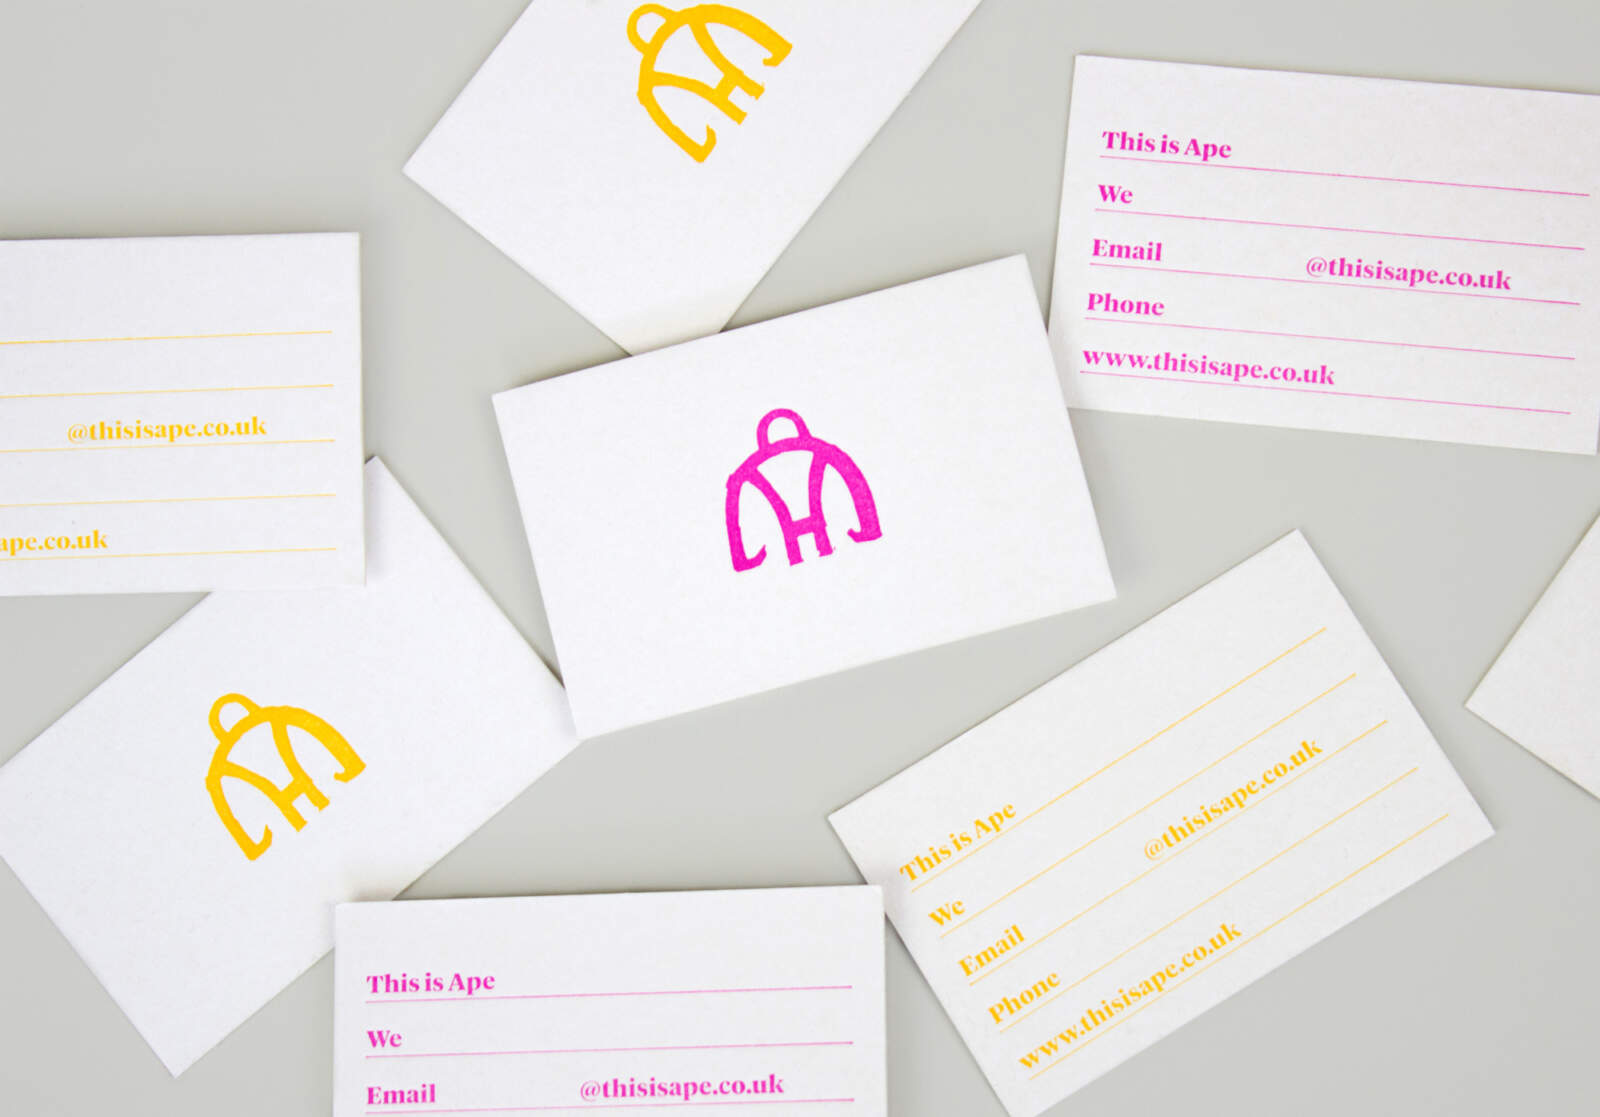 Ape branding used on business cards.